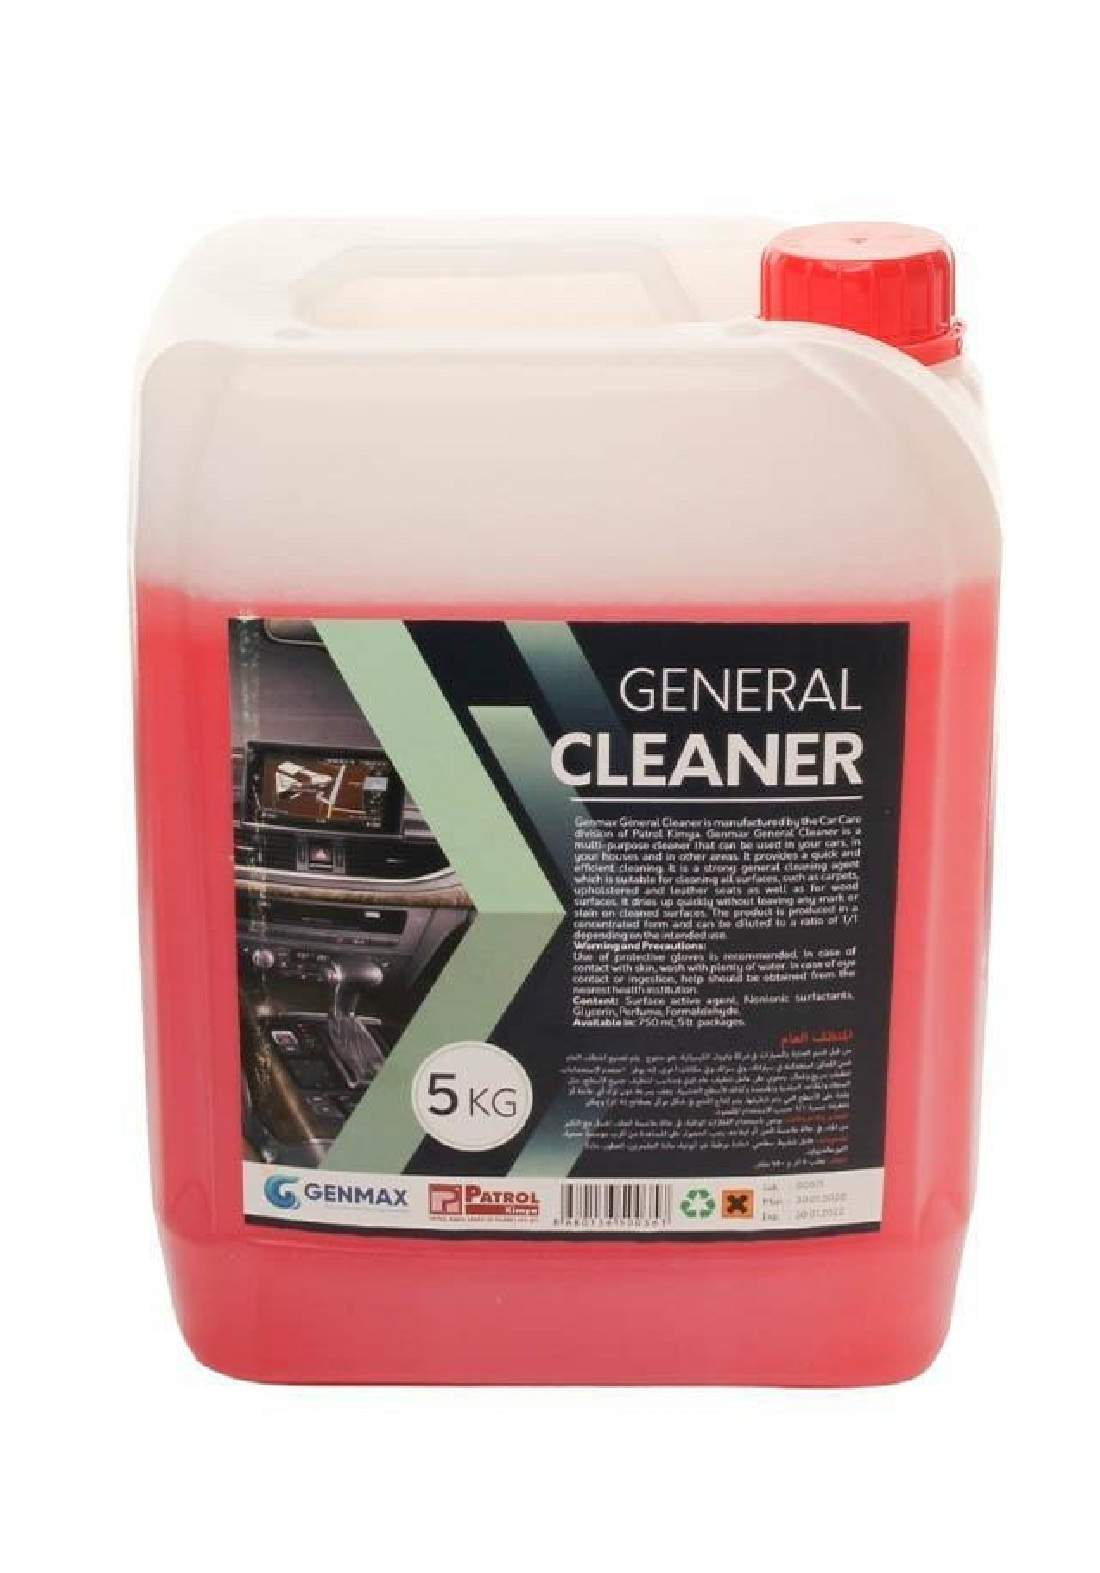 GENMAX GENERAL CLEANER 5Kg منظف عام  5كيلوغرام